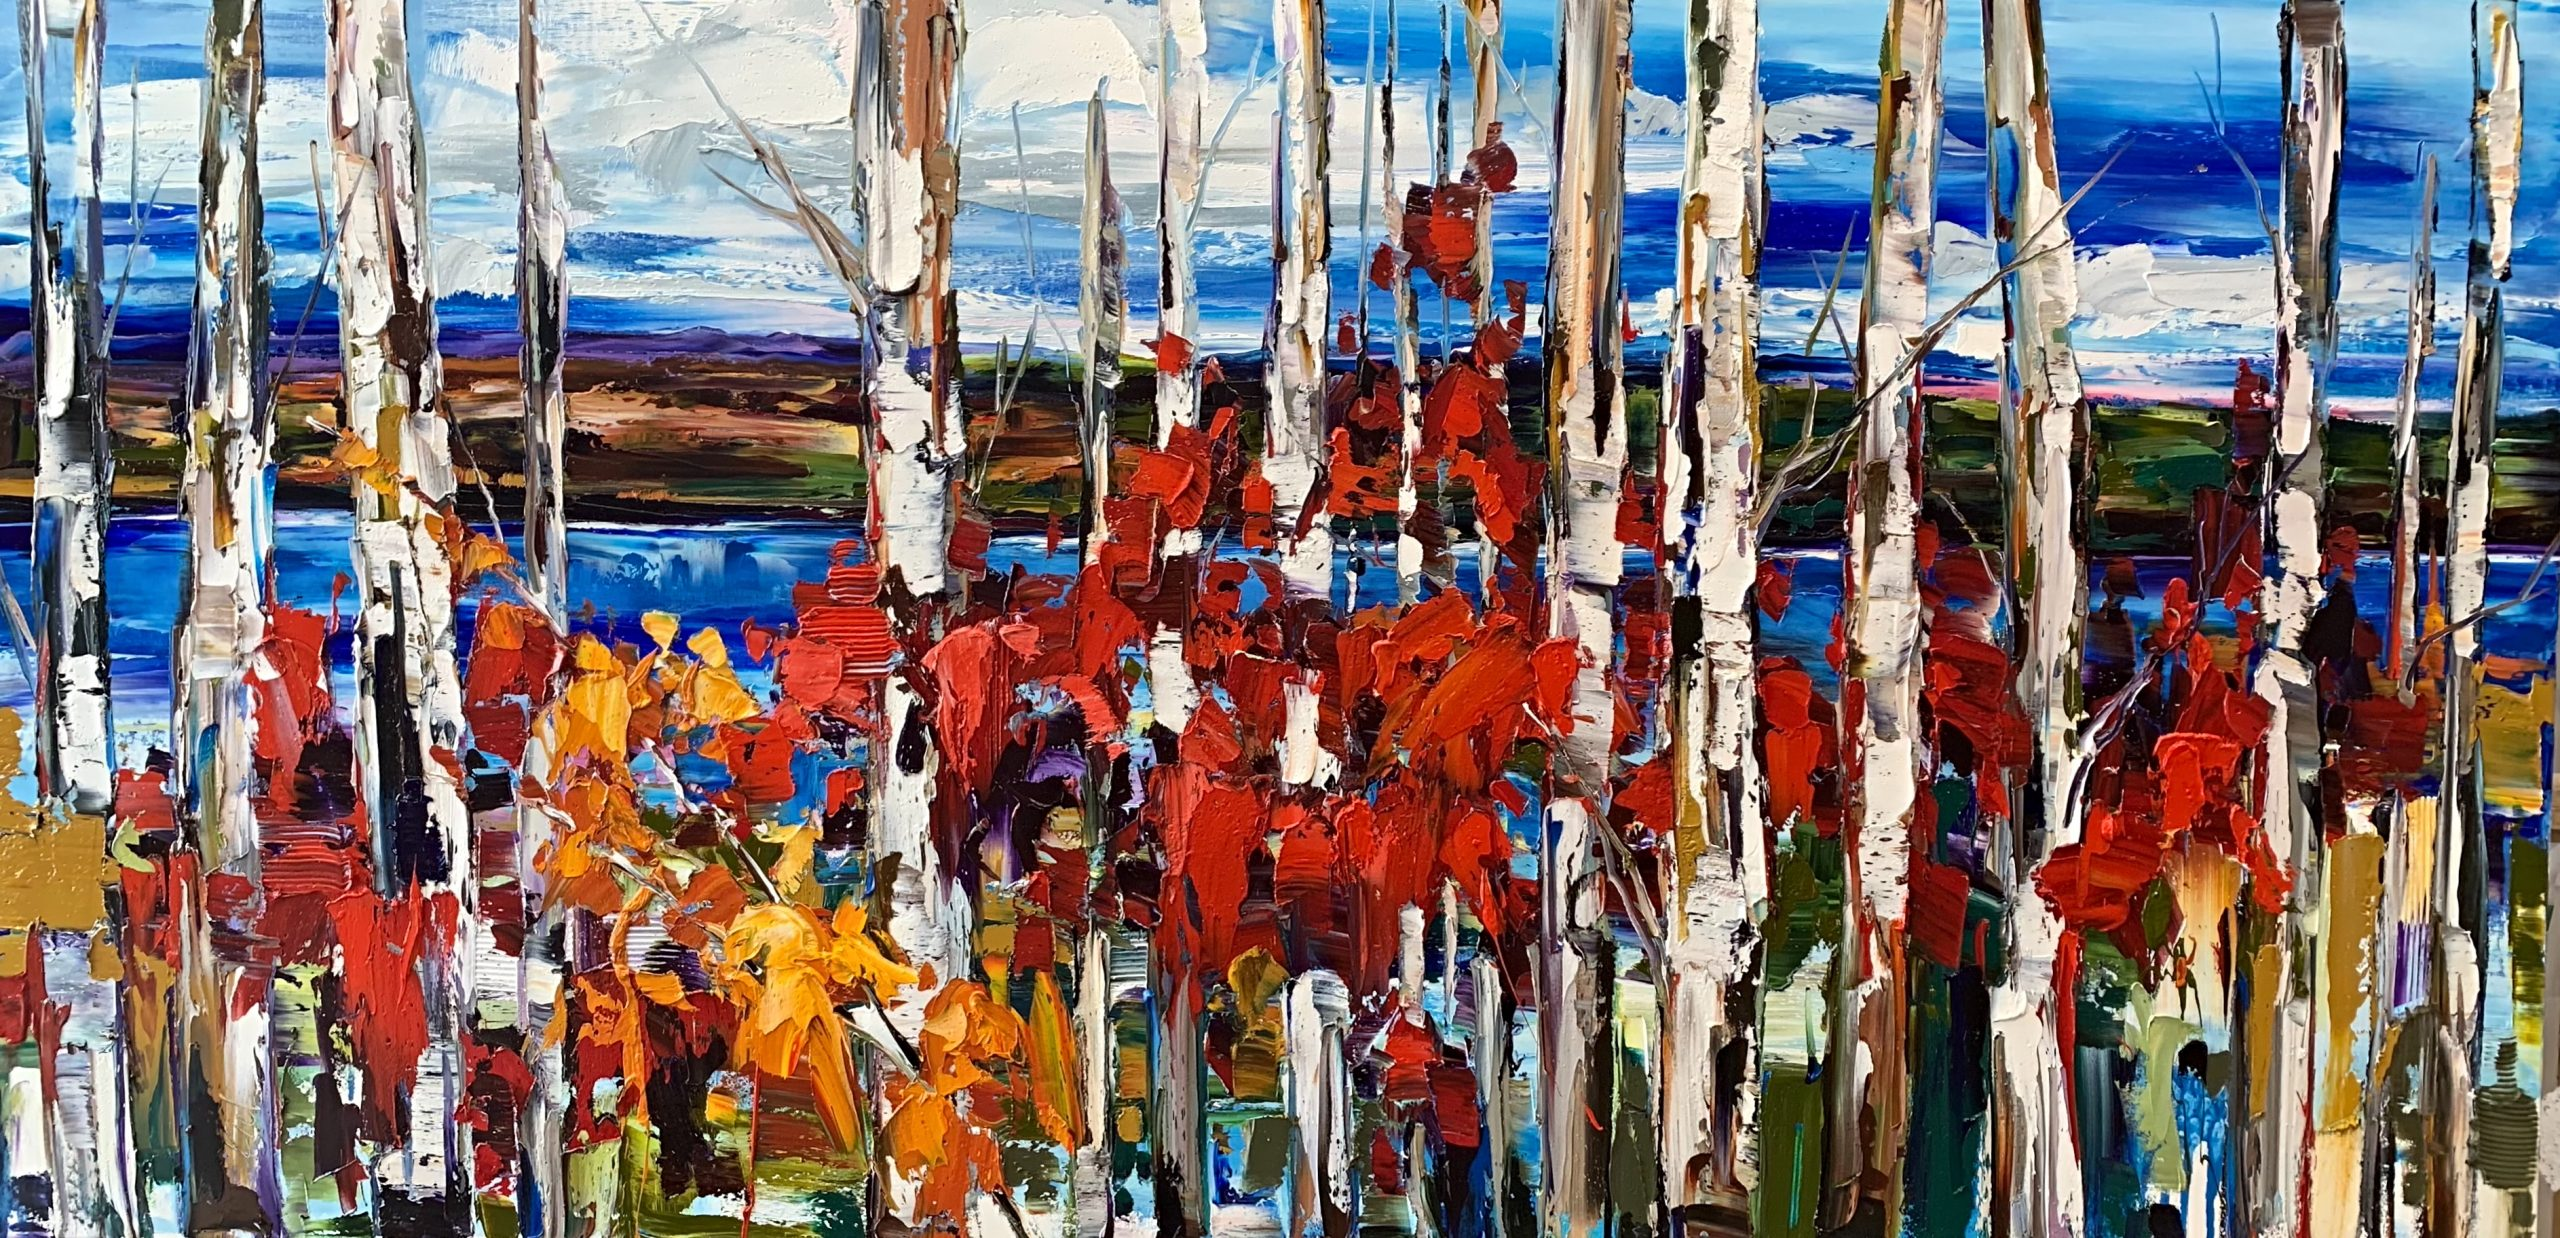 It Can Happen Anytime, landscape painting by Kimberly Kiel | Effusion Art Gallery + Cast Glass Studio, Invermere BC